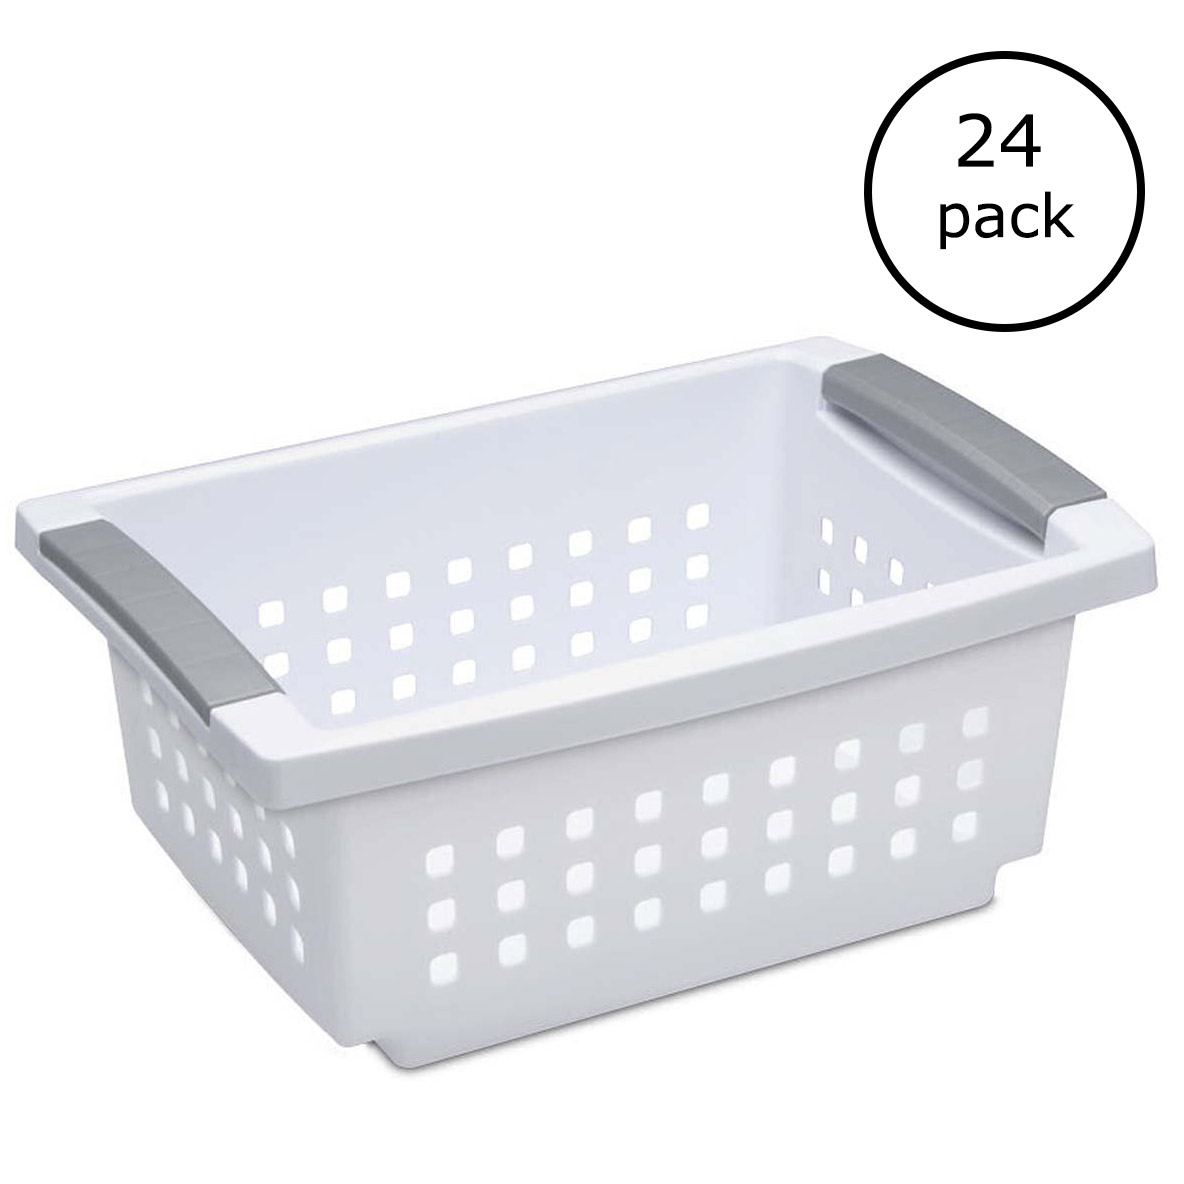 Sterilite Small White Stacking Basket with Titanium Accents (24 Pack) 16608006